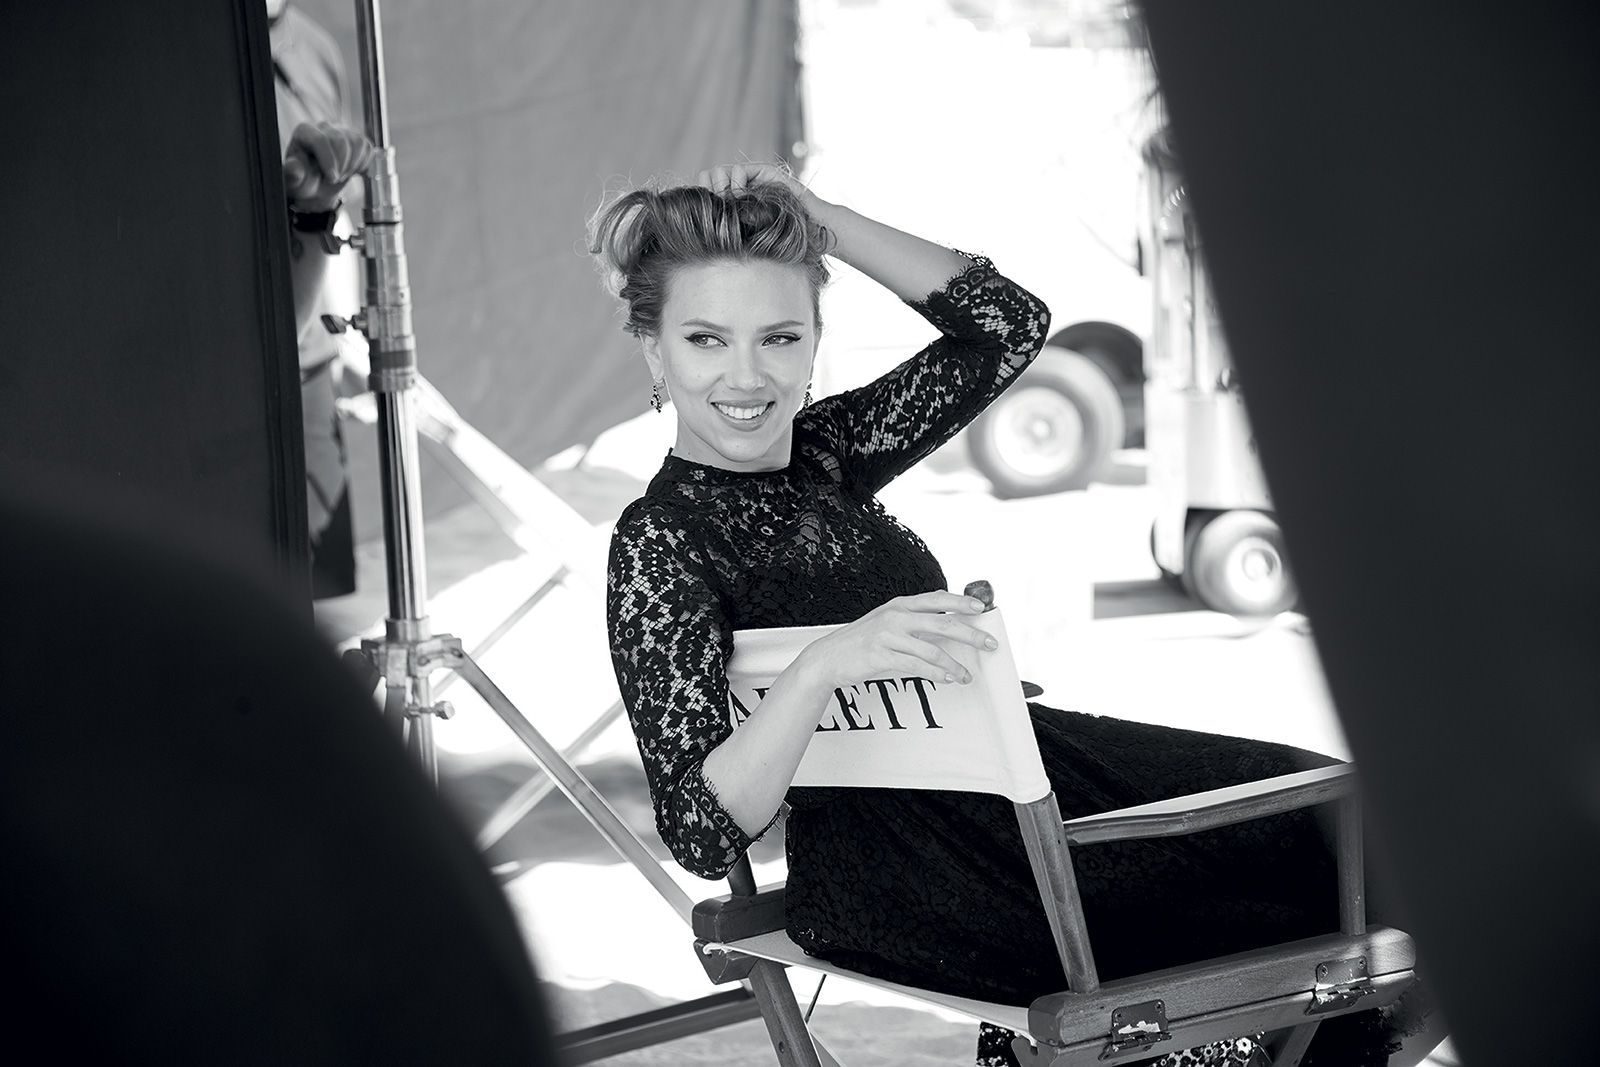 Scarlett-for-DolceGabbana-The-One-2013